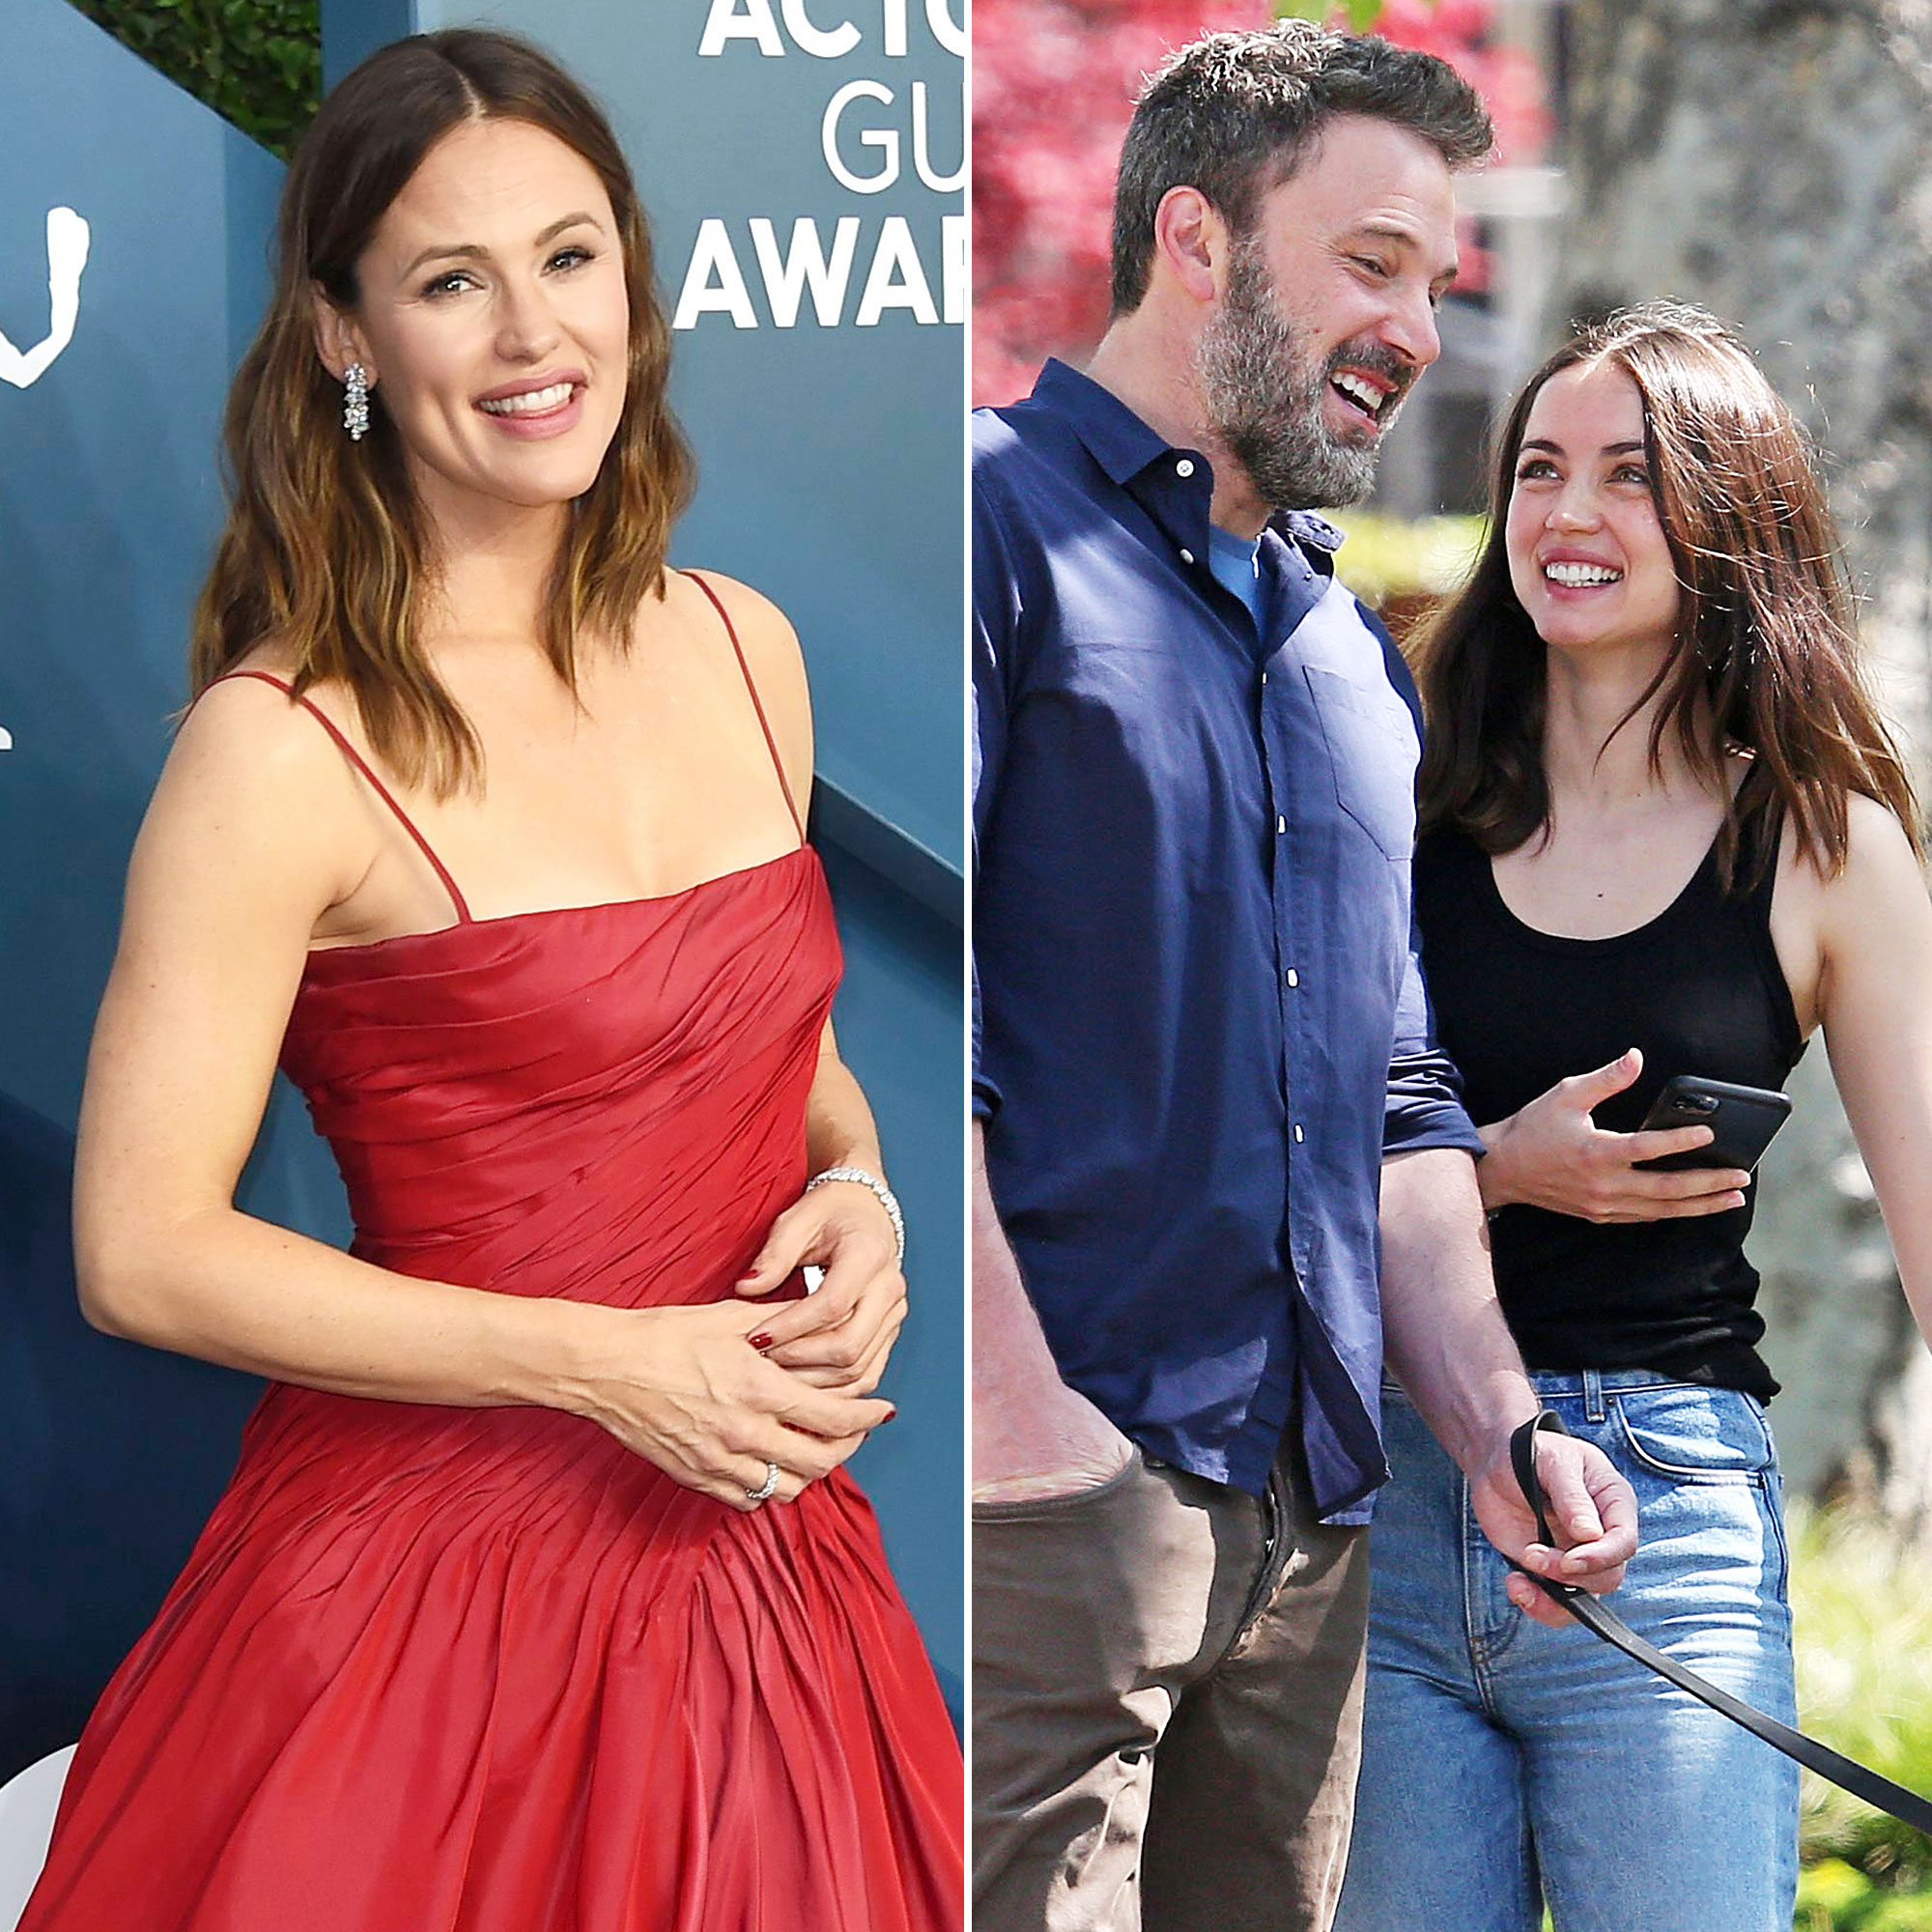 Jennifer Garner Is Very Friendly With Ben Affleck's Girlfriend Ana de Armas